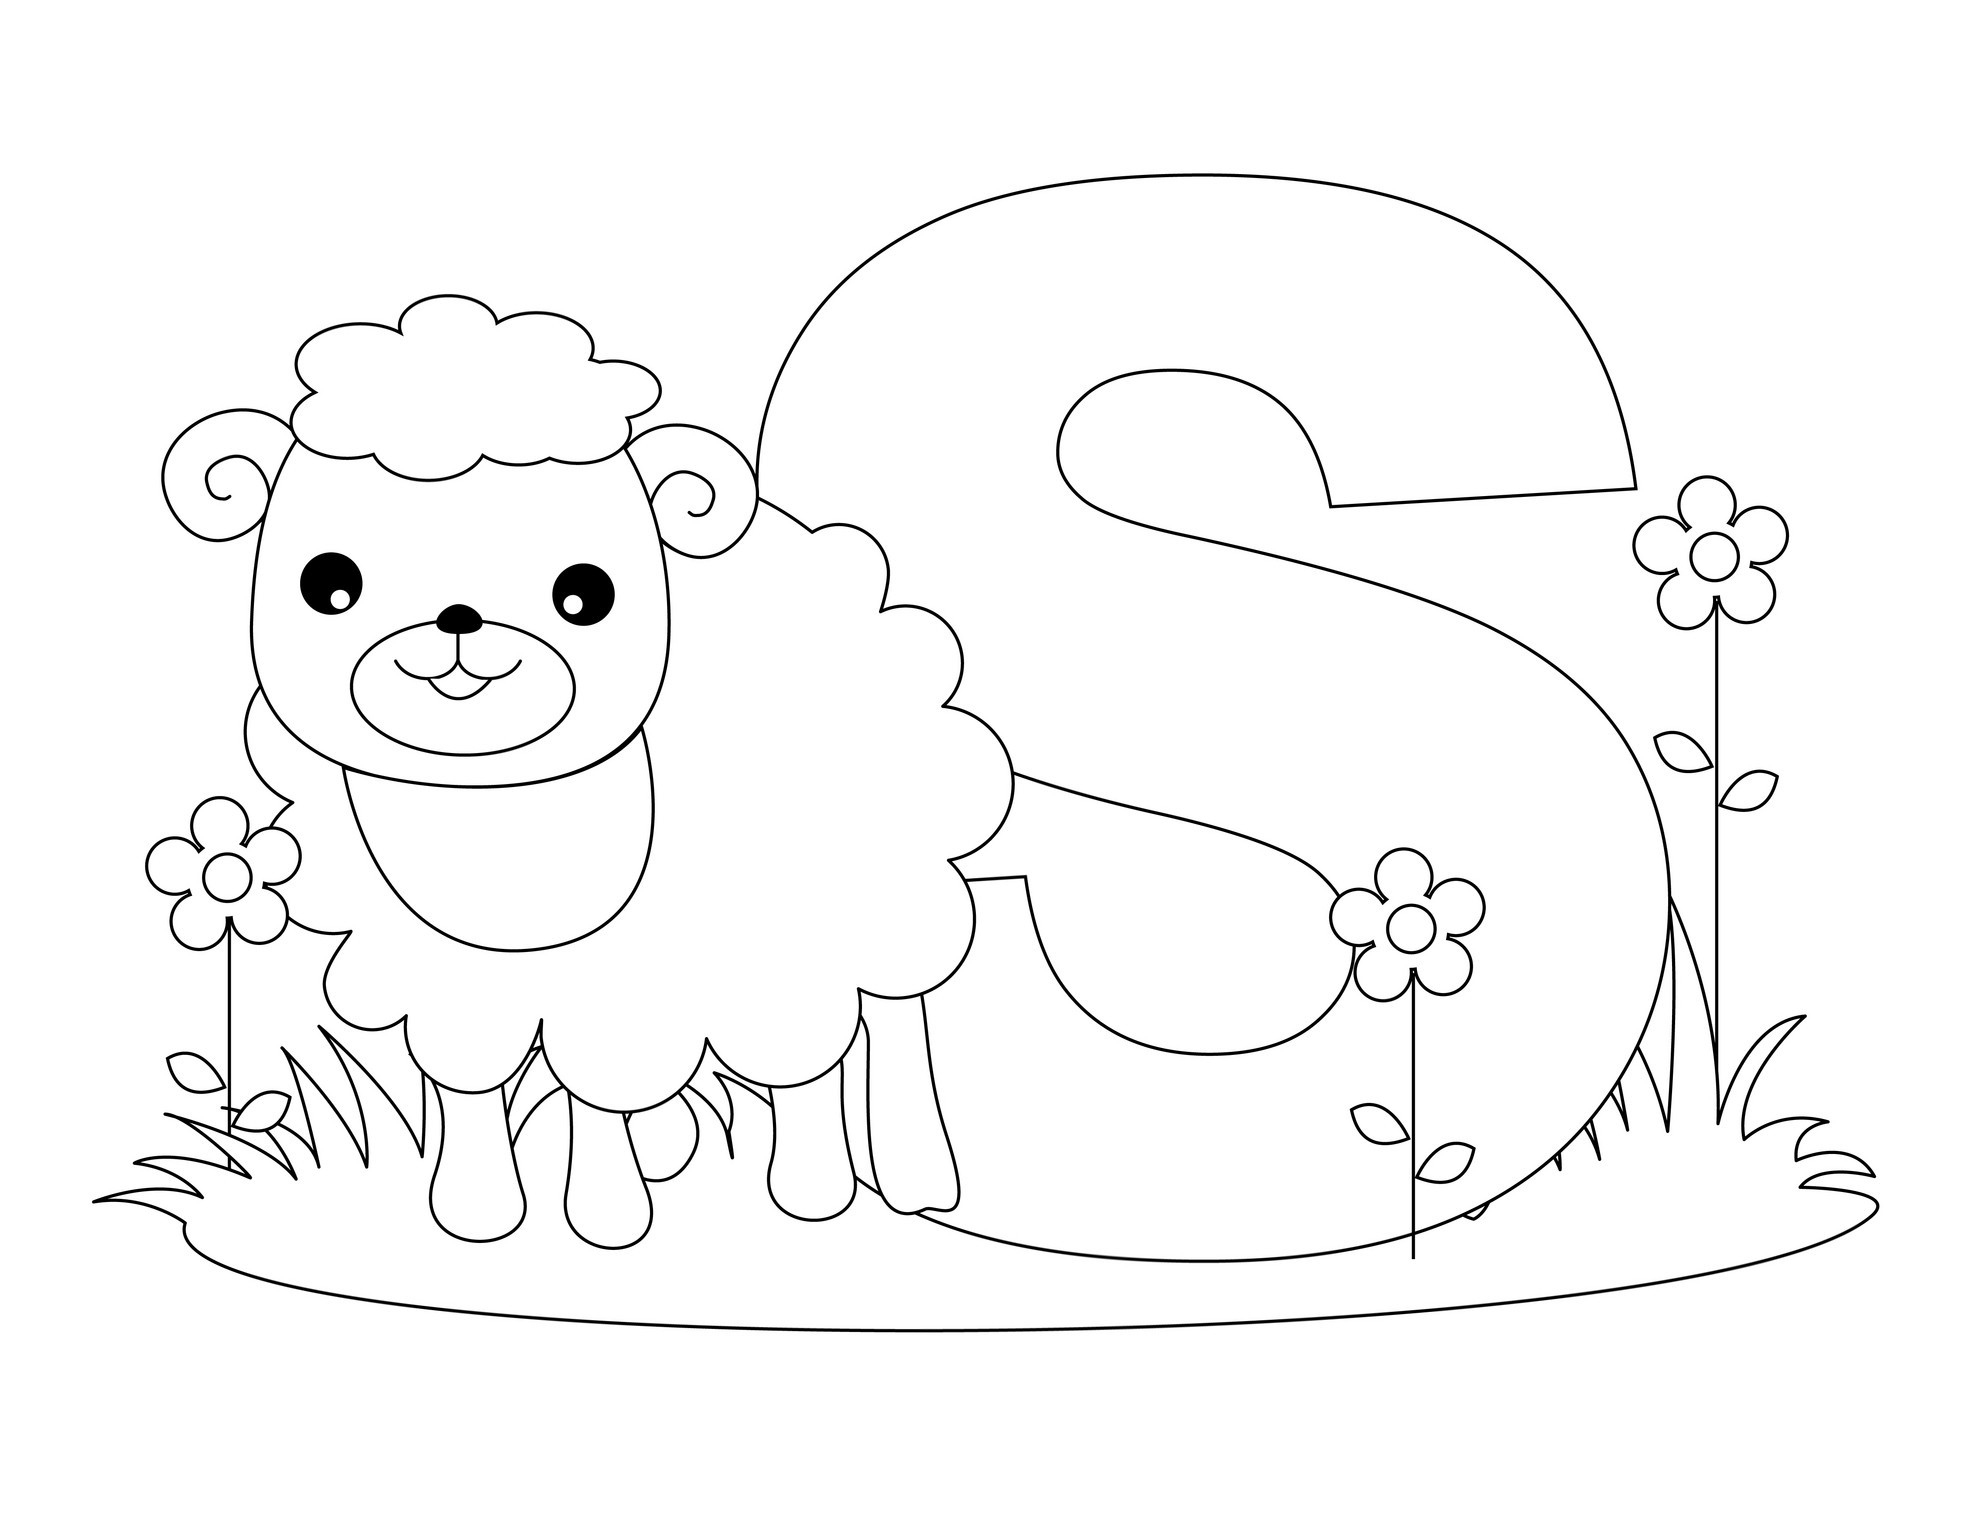 alphabet coloring pages letter s - Coloring Pages Of Alphabet